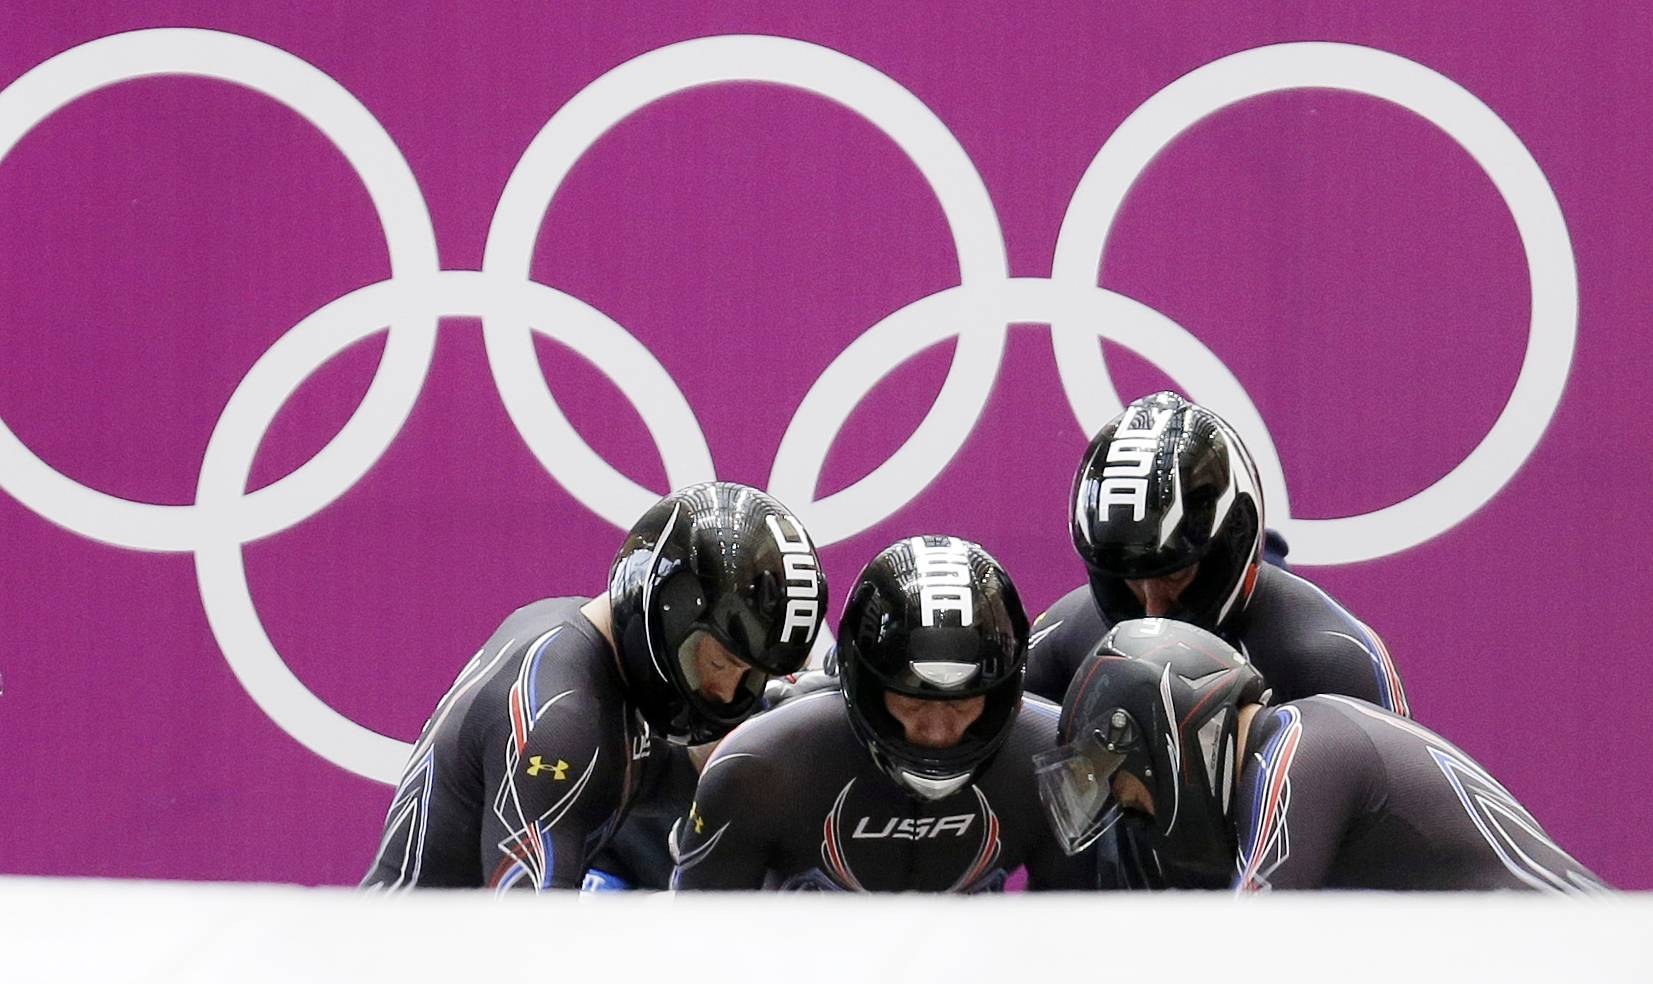 The team from the United States USA-1, with Steven Holcomb, Curtis Tomasevicz, Steven Langton and Christopher Fogt, start their third run during the men's four-man bobsled competition final at the 2014 Winter Olympics, Sunday, Feb. 23, 2014, in Krasnaya Polyana, Russia.